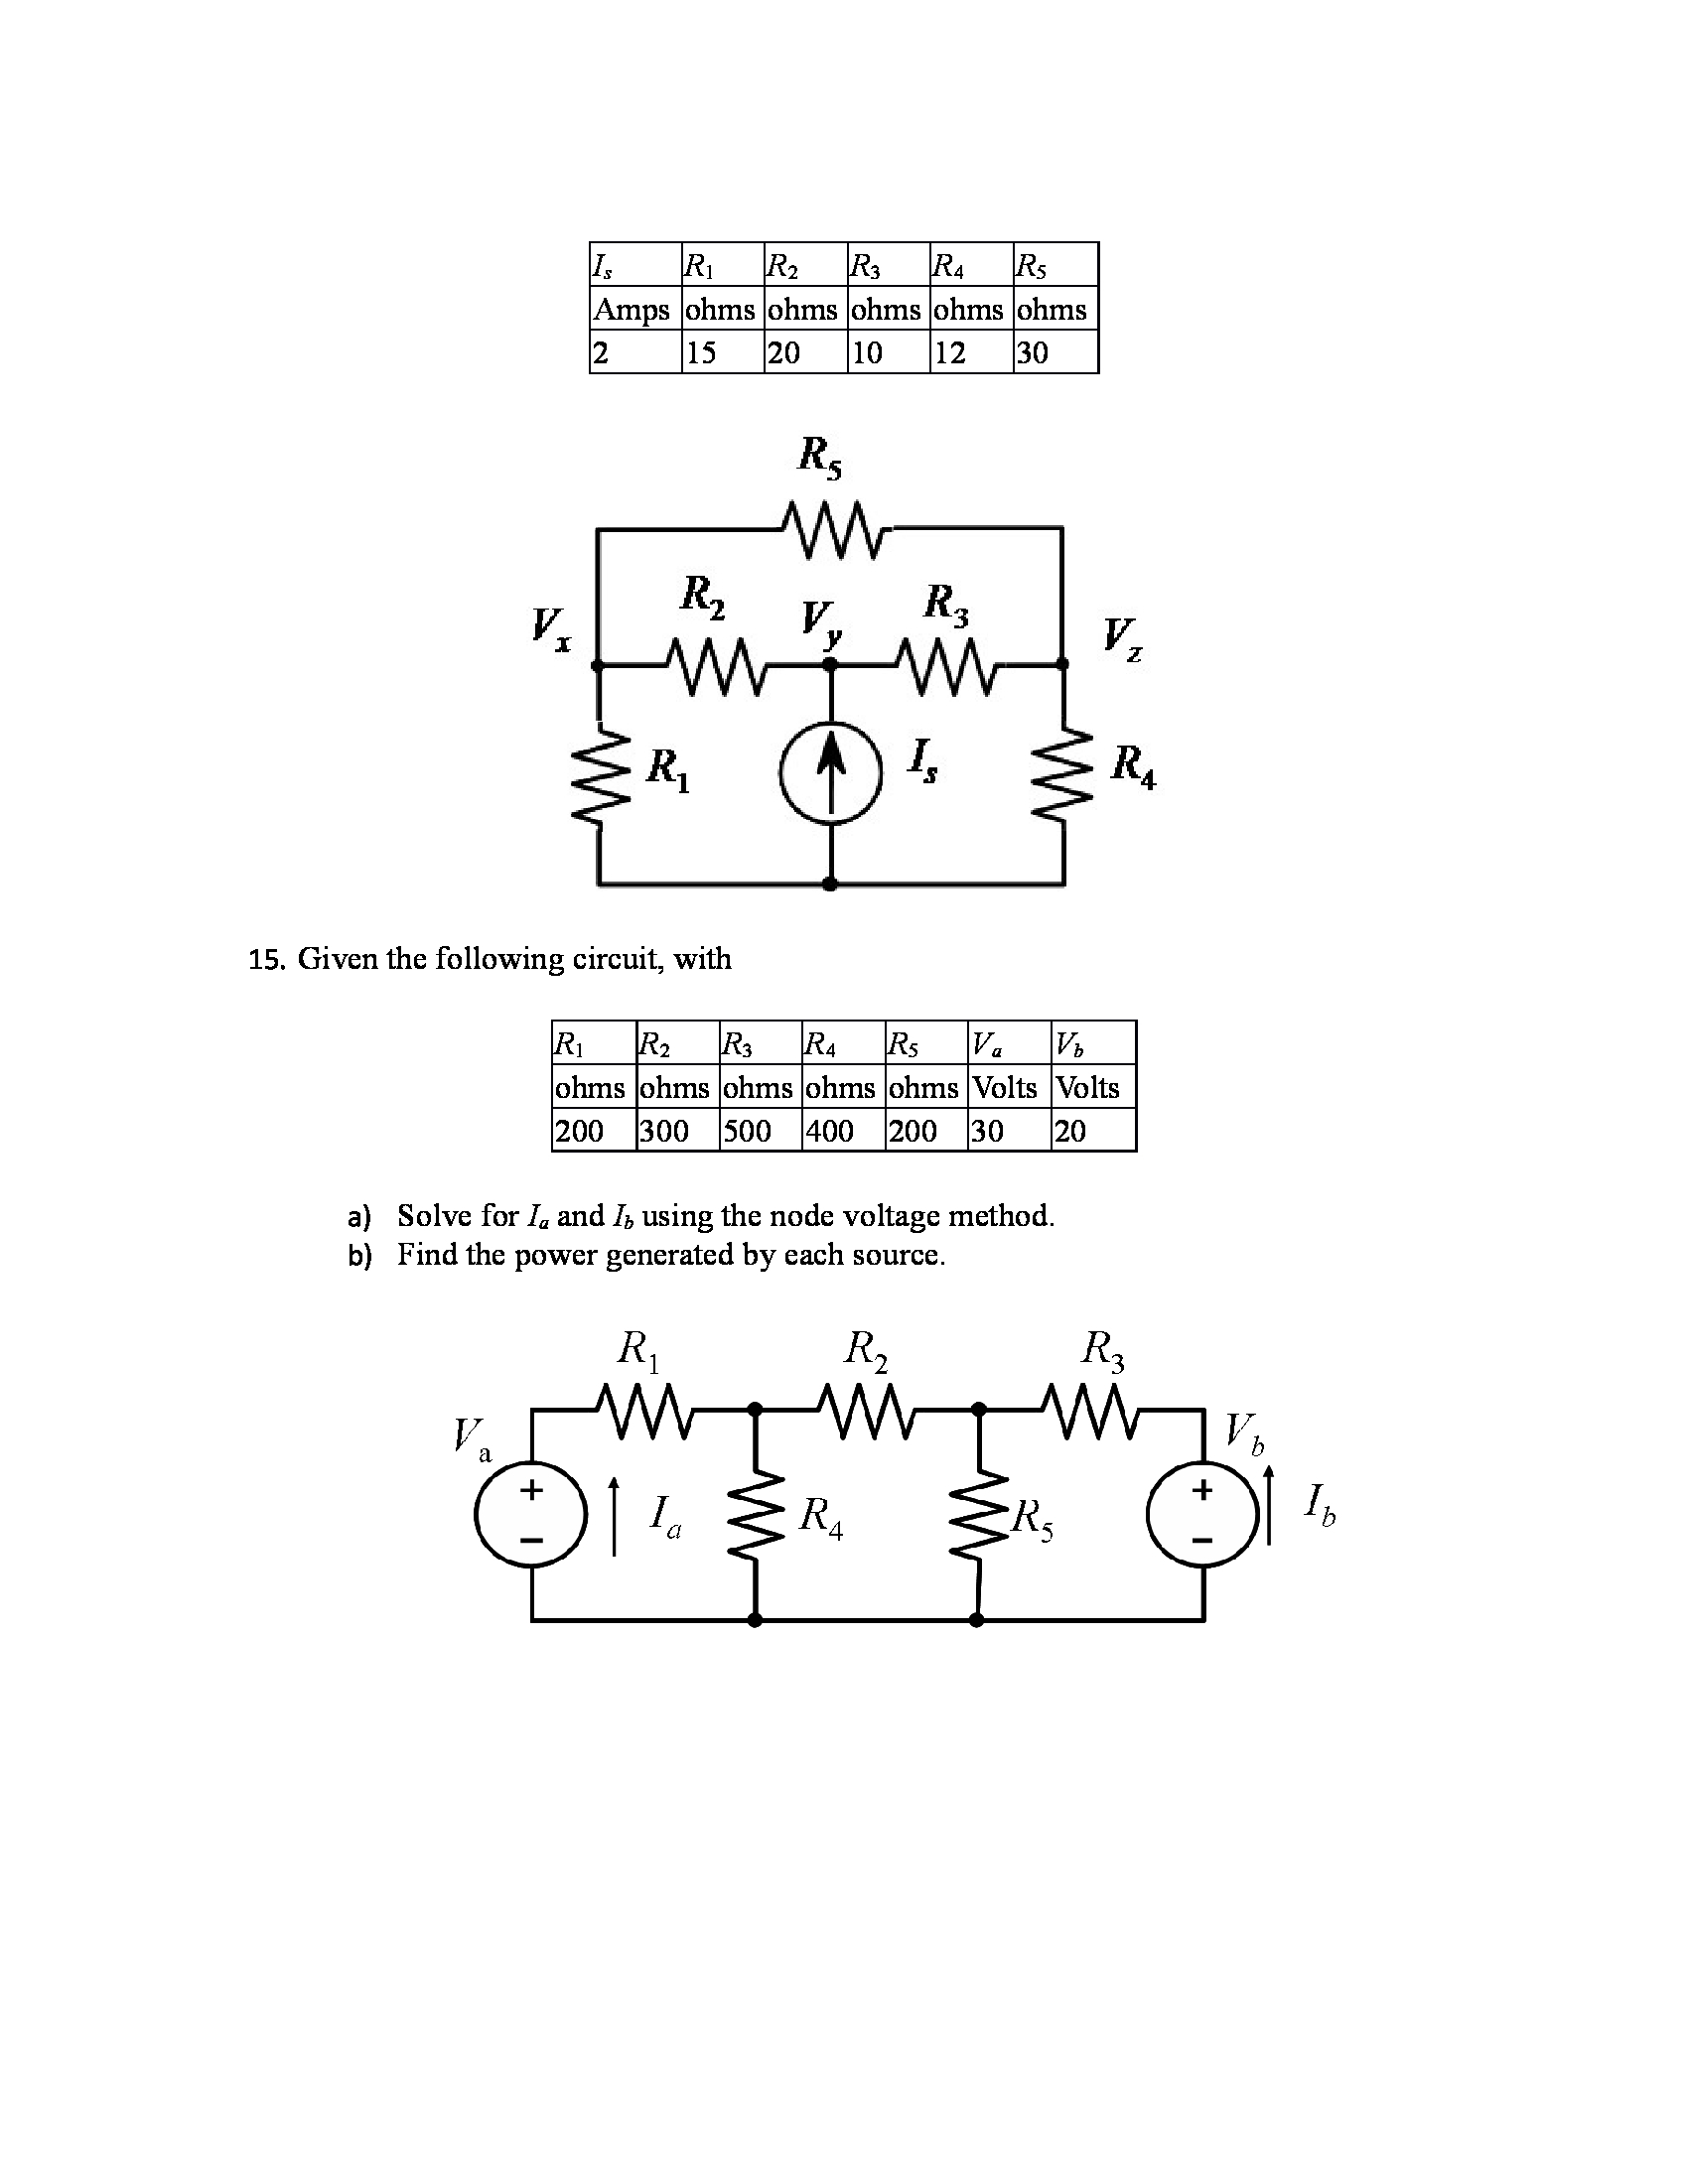 Given the following circuit, with Solve for Ia an